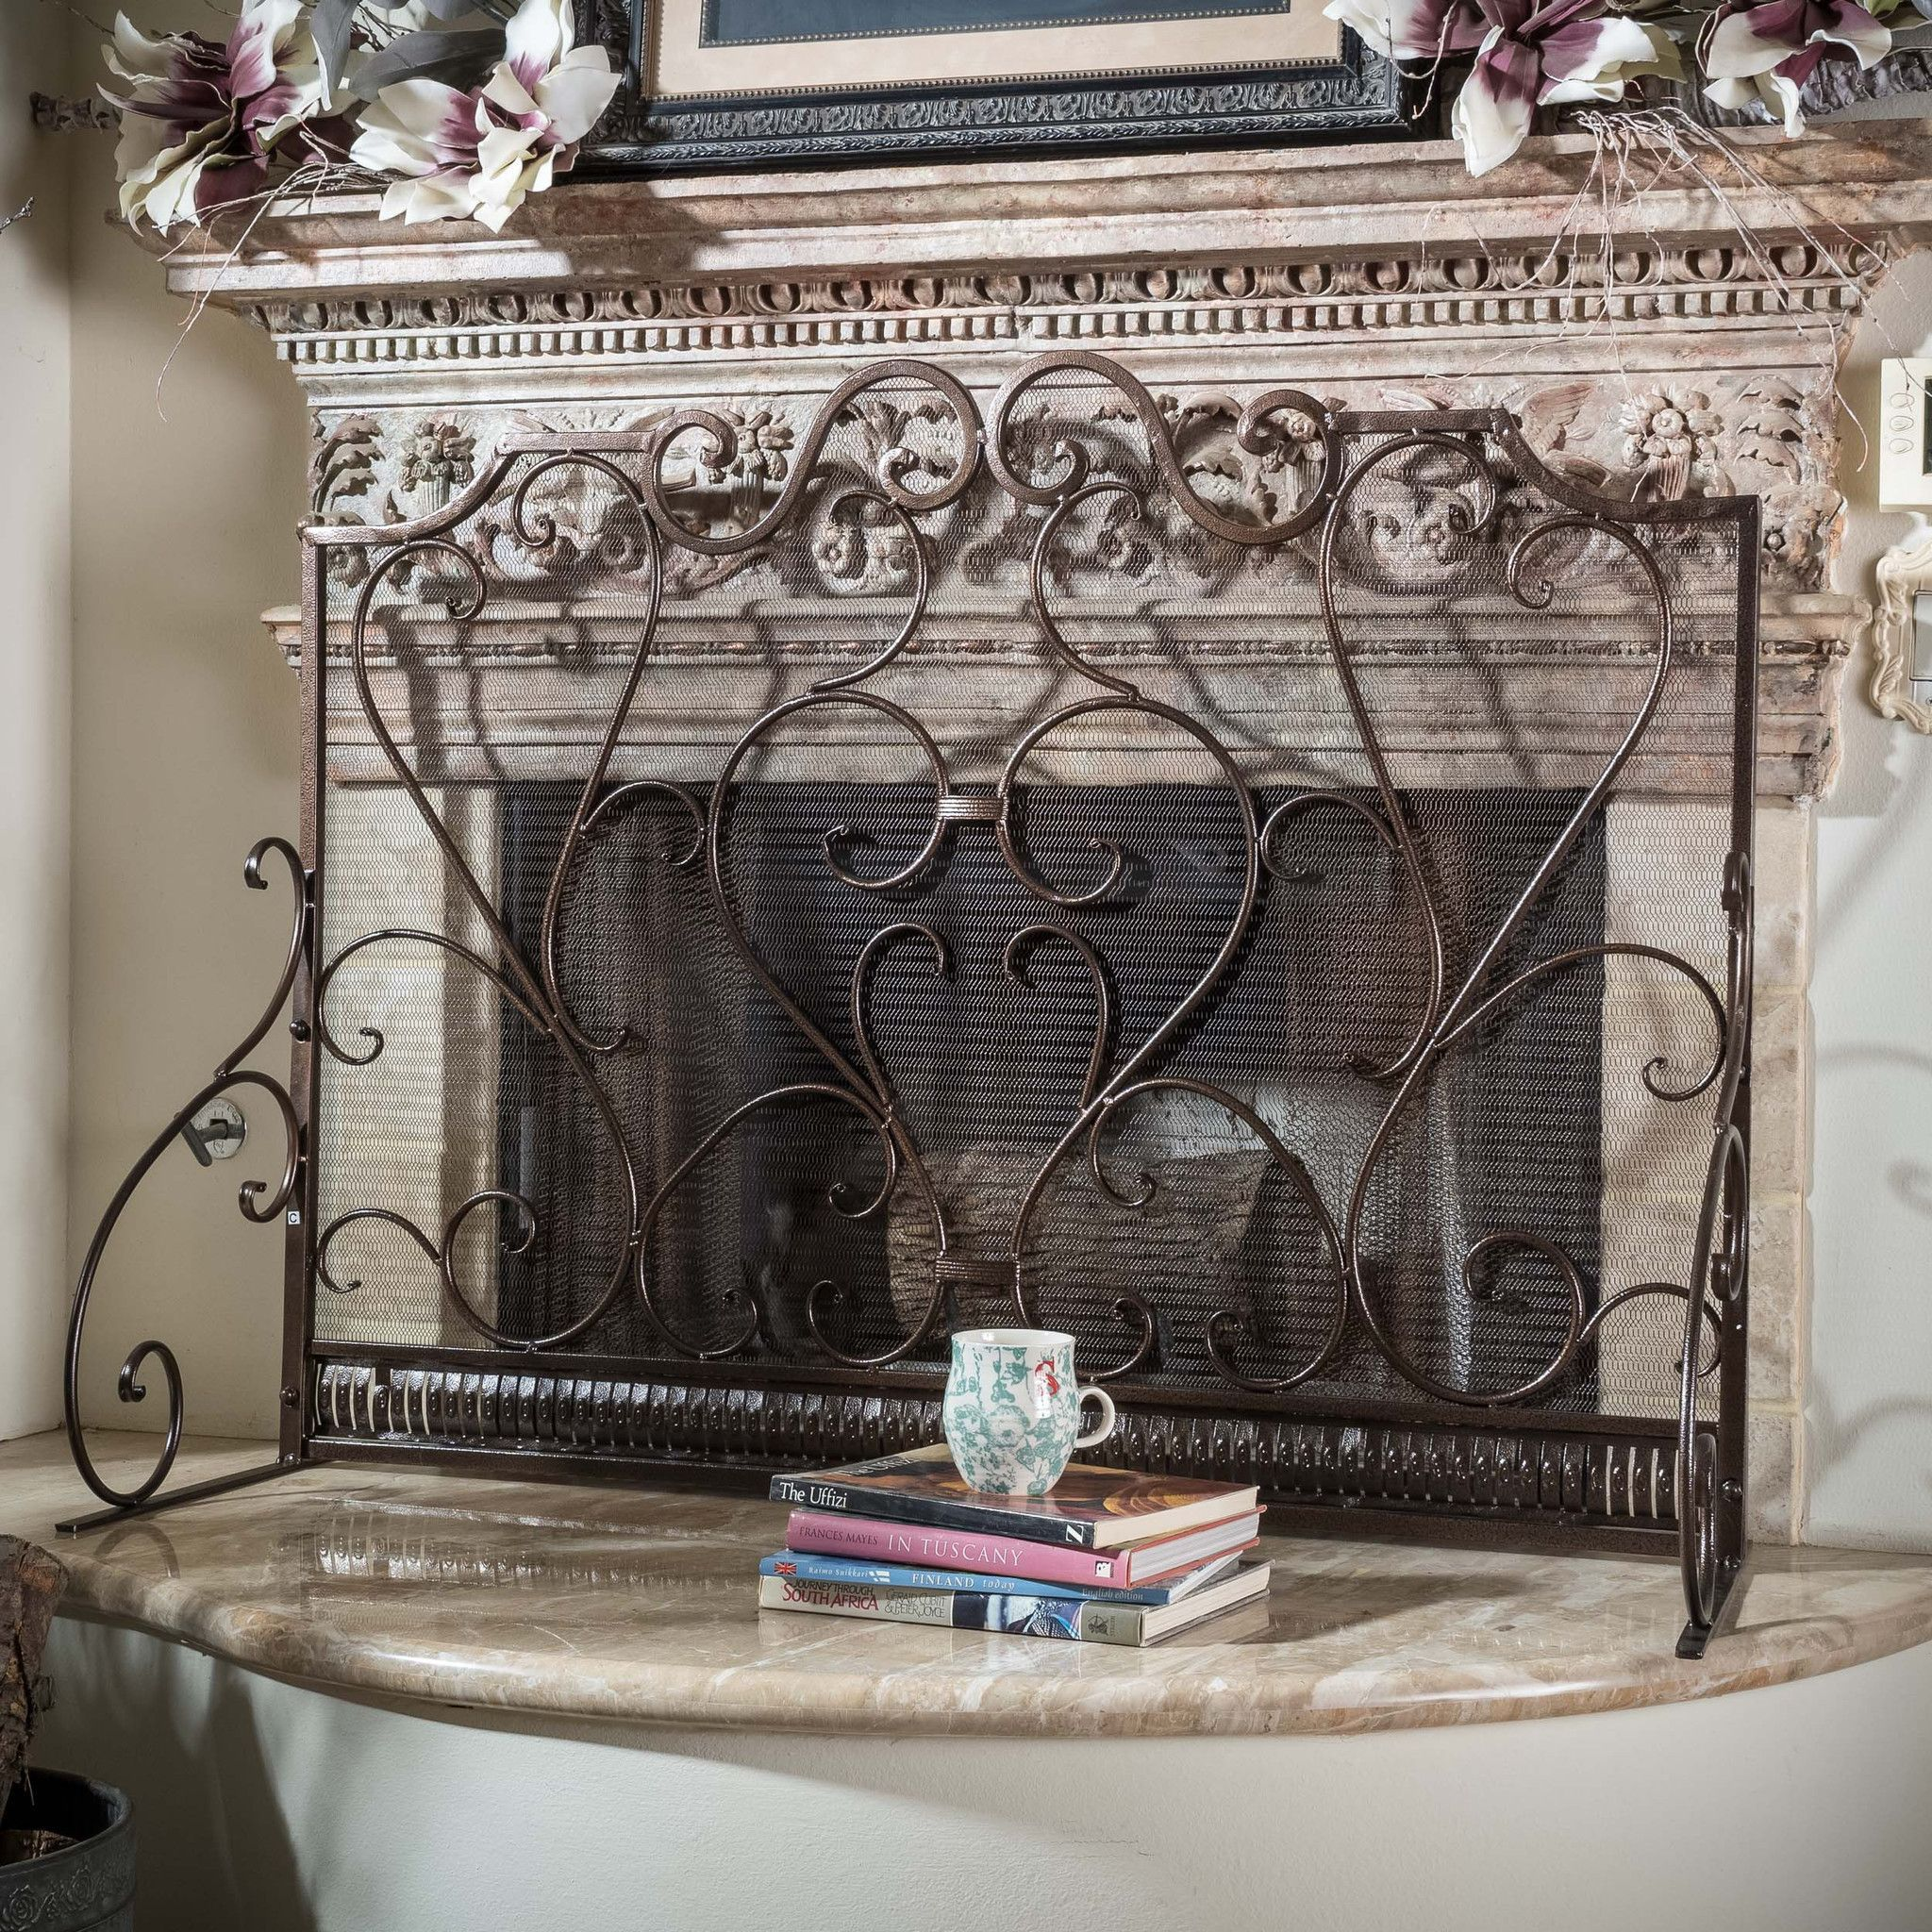 picture hearth wrought crest screen fireplace iron coppersx powde with solid doors plow p large of